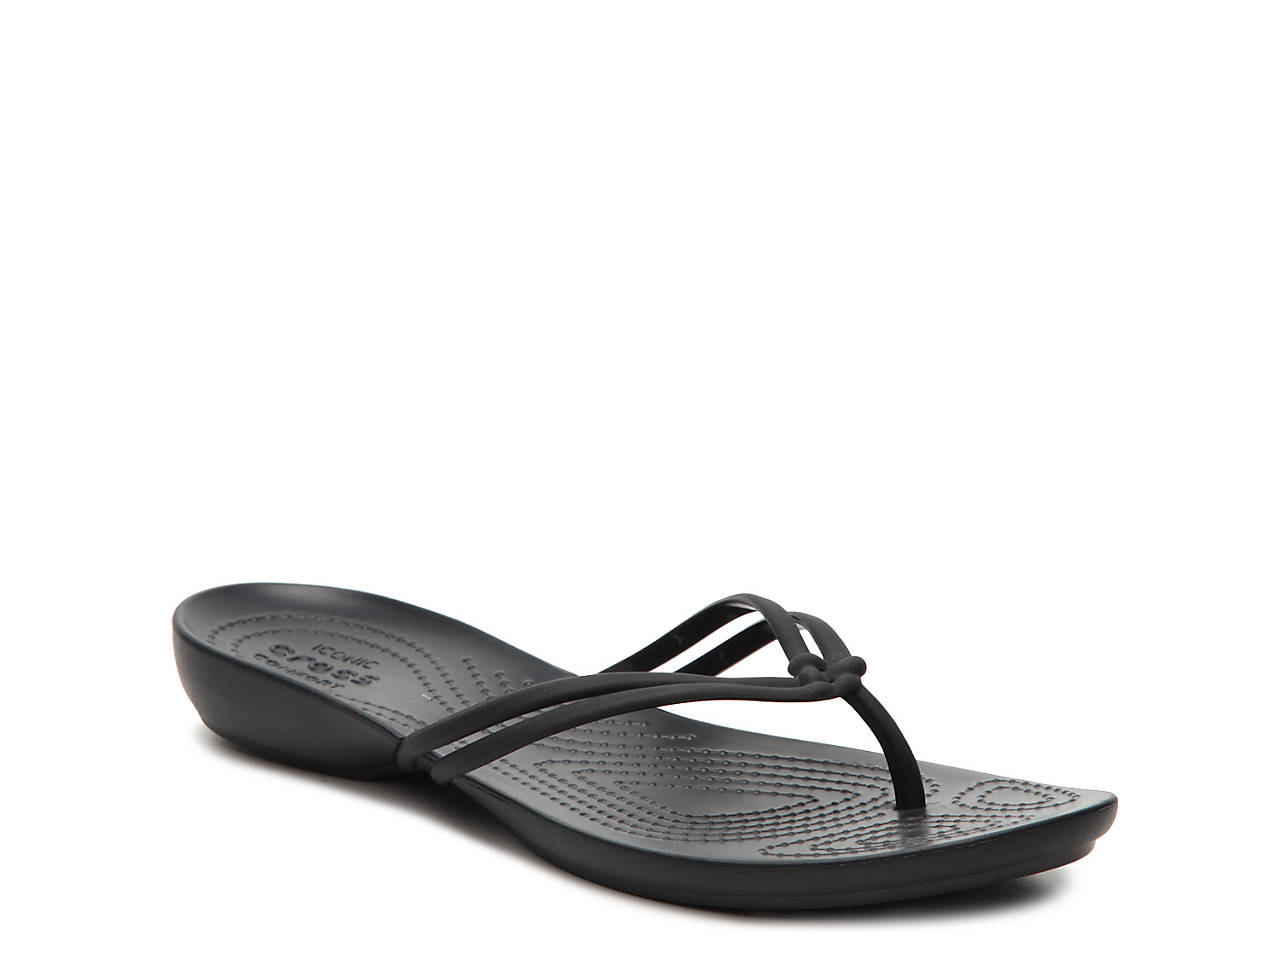 2b7a4e1c944724 Crocs Isabella Flip Flop Women s Shoes